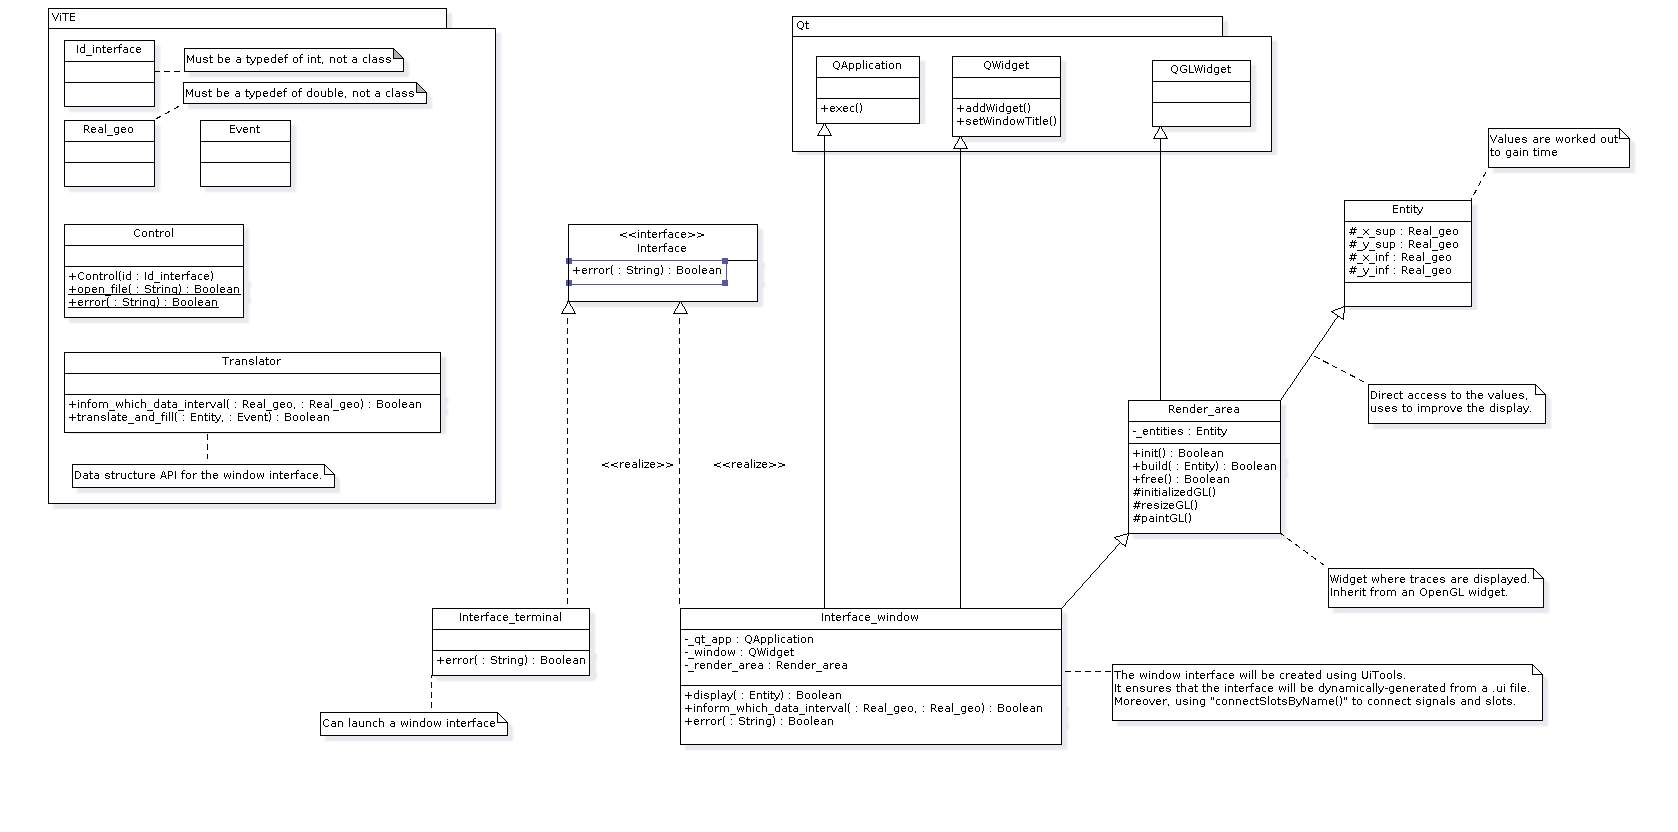 docs/management/interface/class diagram/UC_V1.png